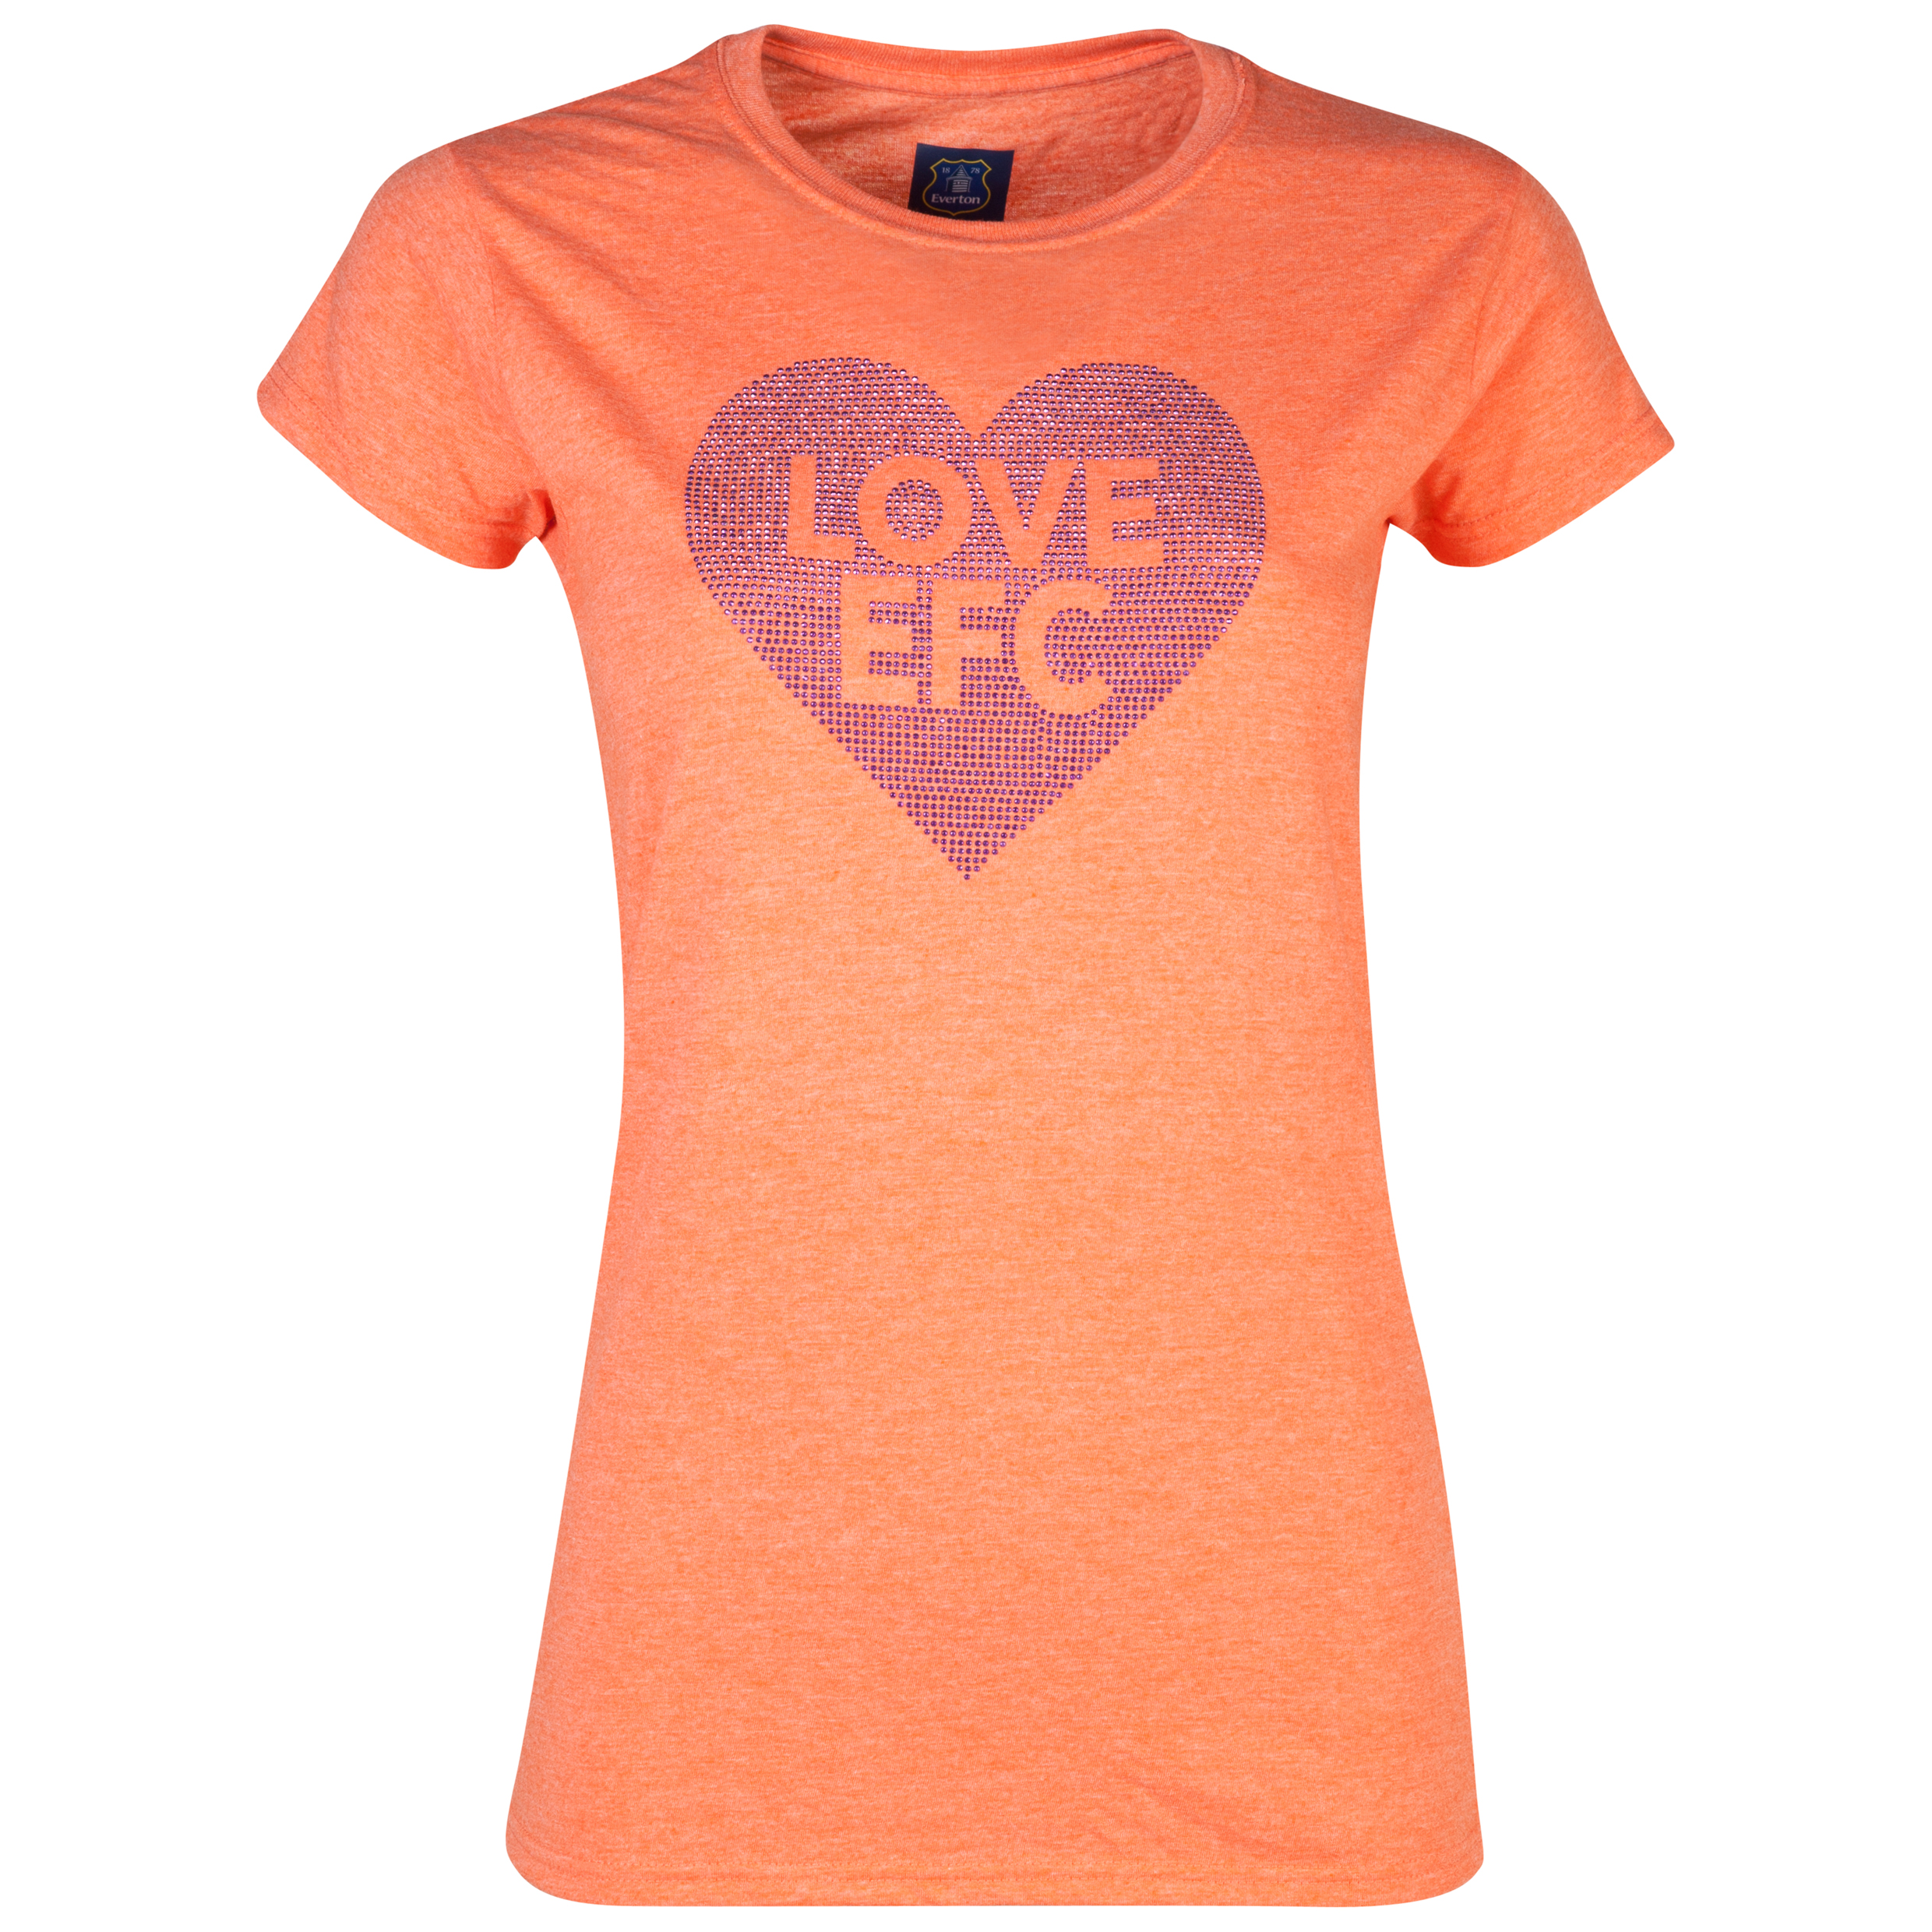 Everton Rhinestone T-Shirt - Womens Orange